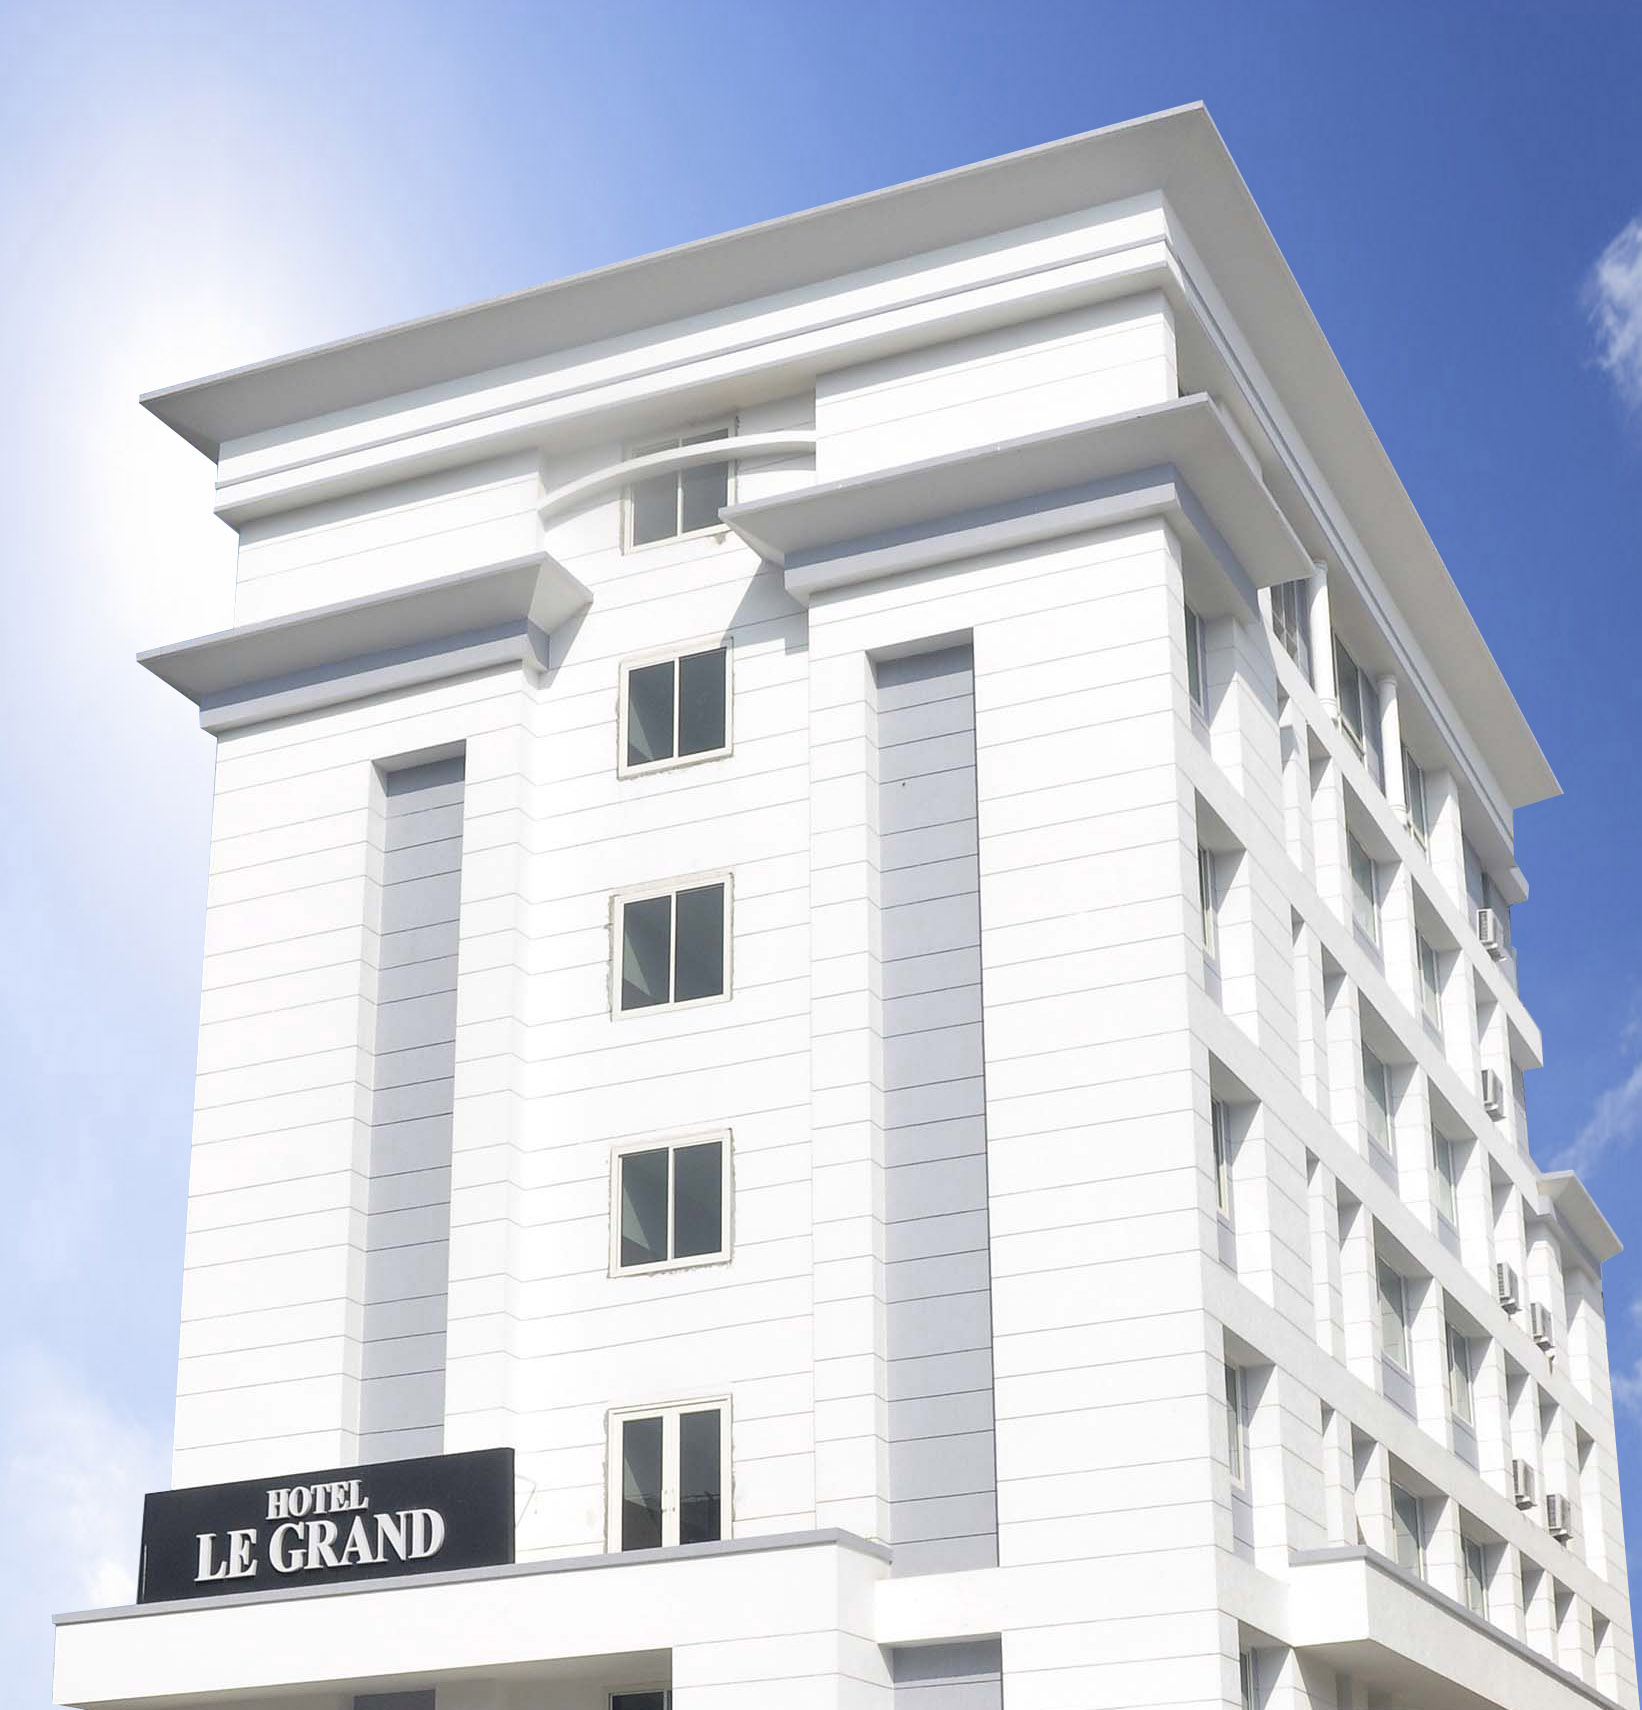 Hotel le grand jaipur india tourist information for Le grand hotel